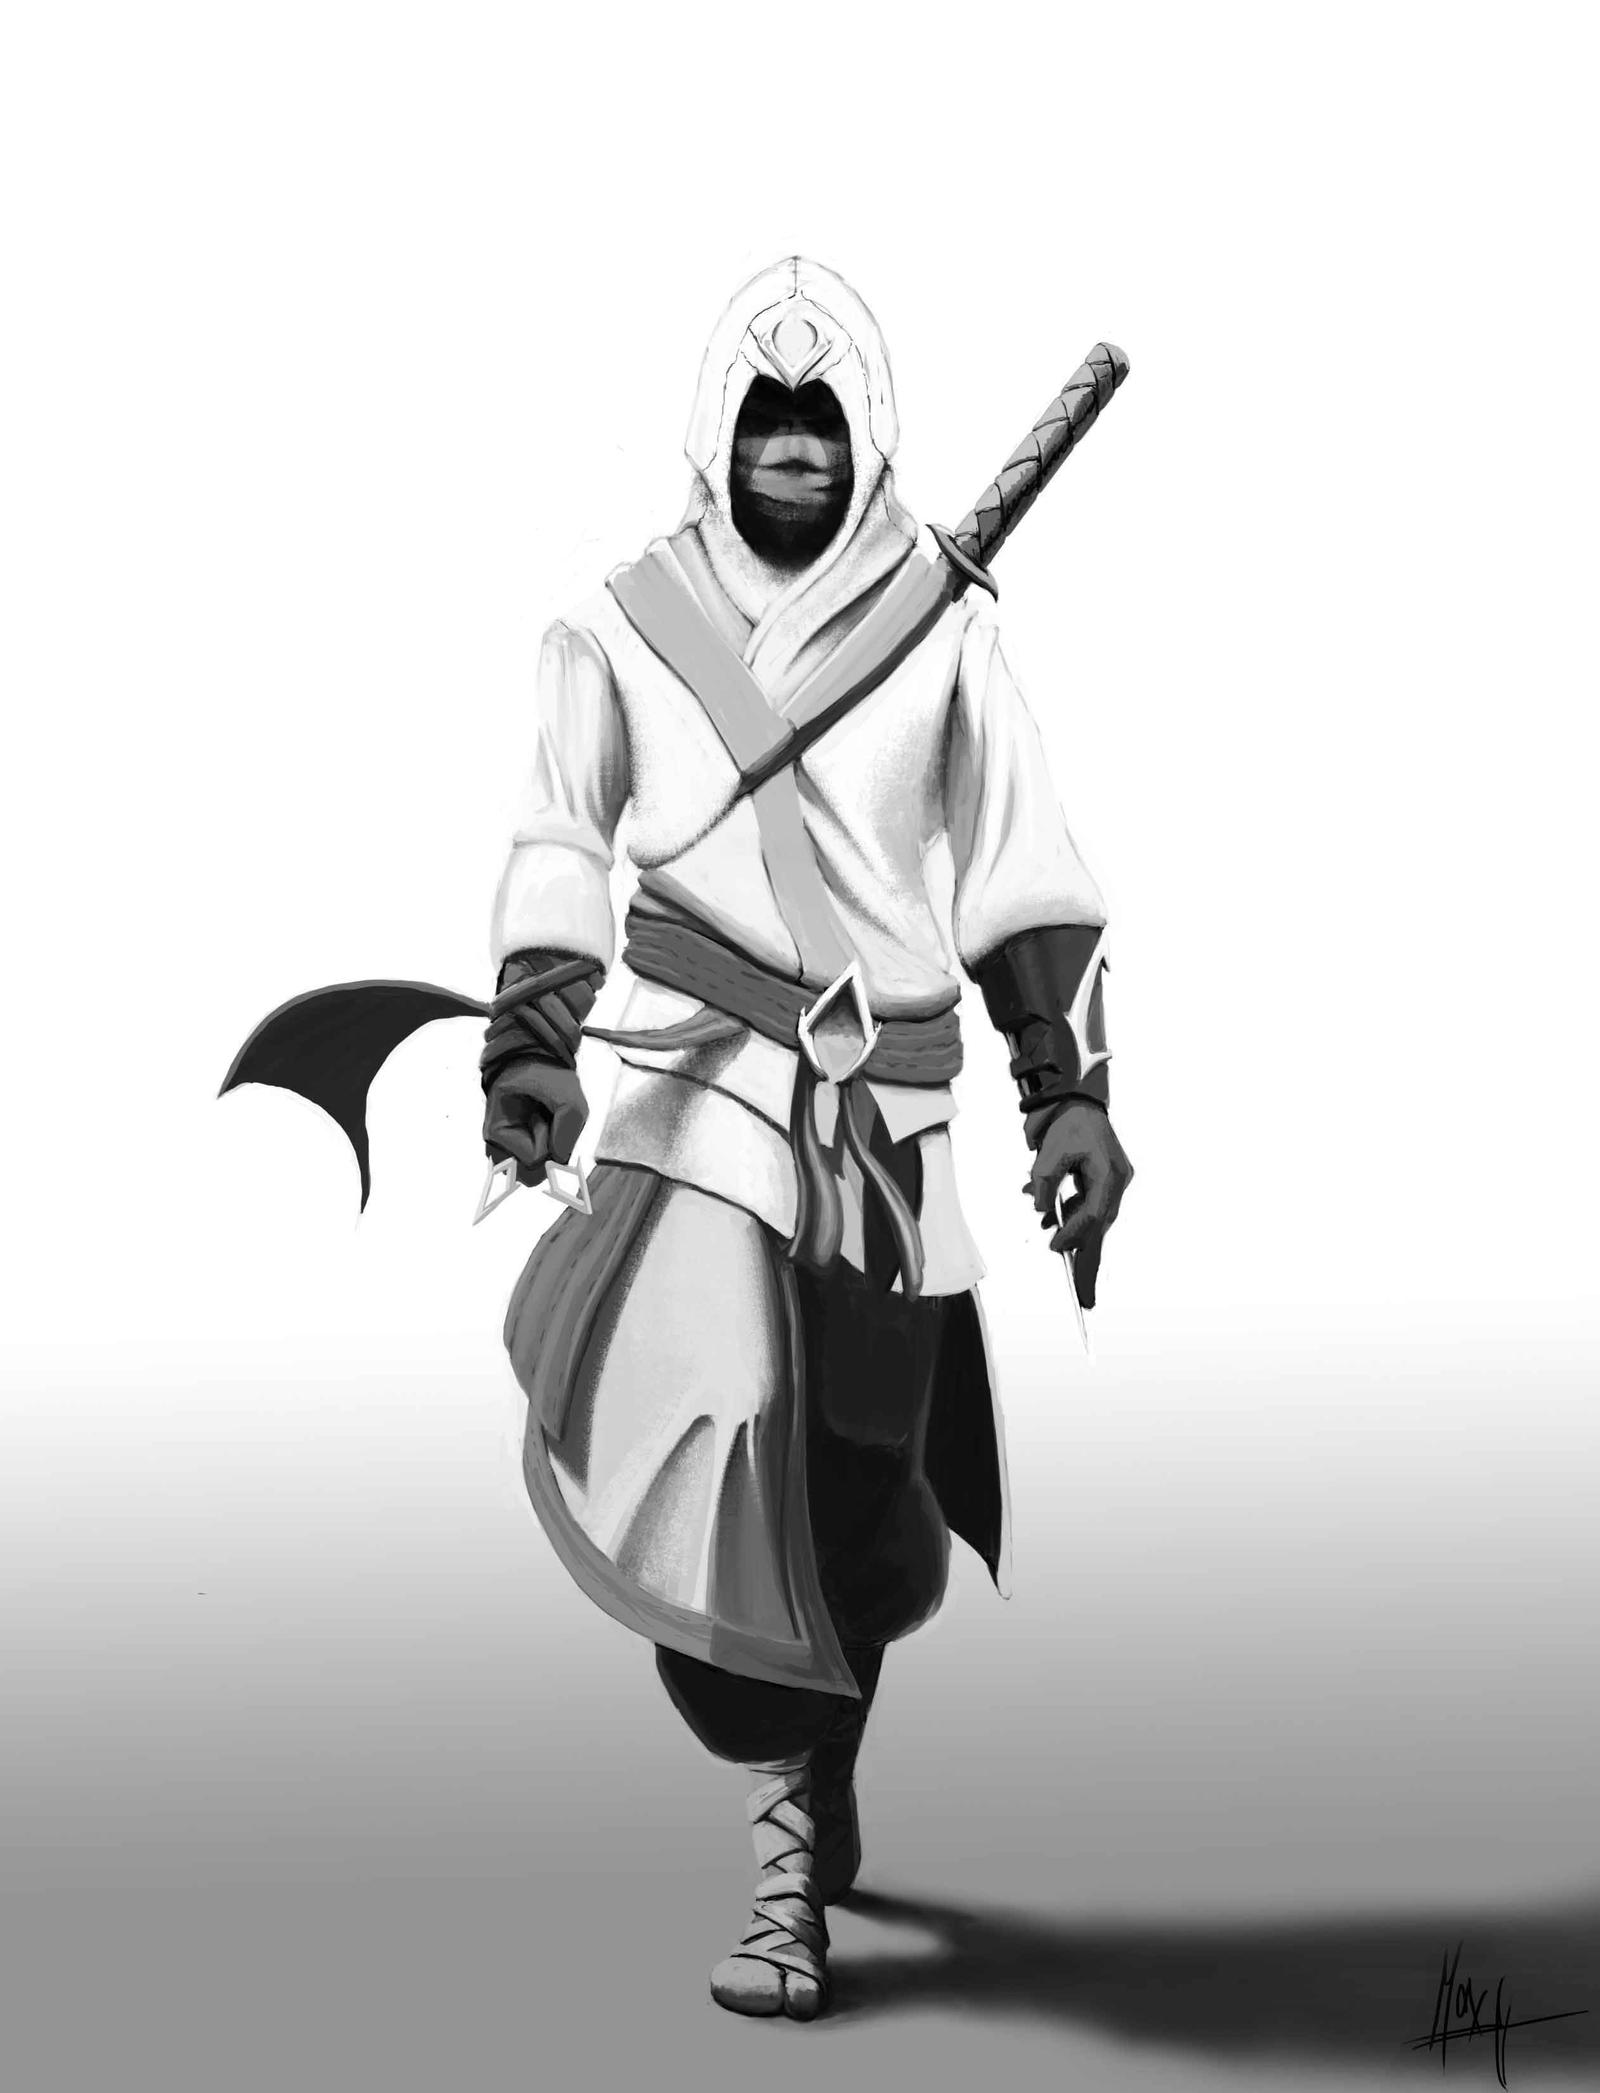 Assassin S Creed Ninja By Enterthellama On Deviantart